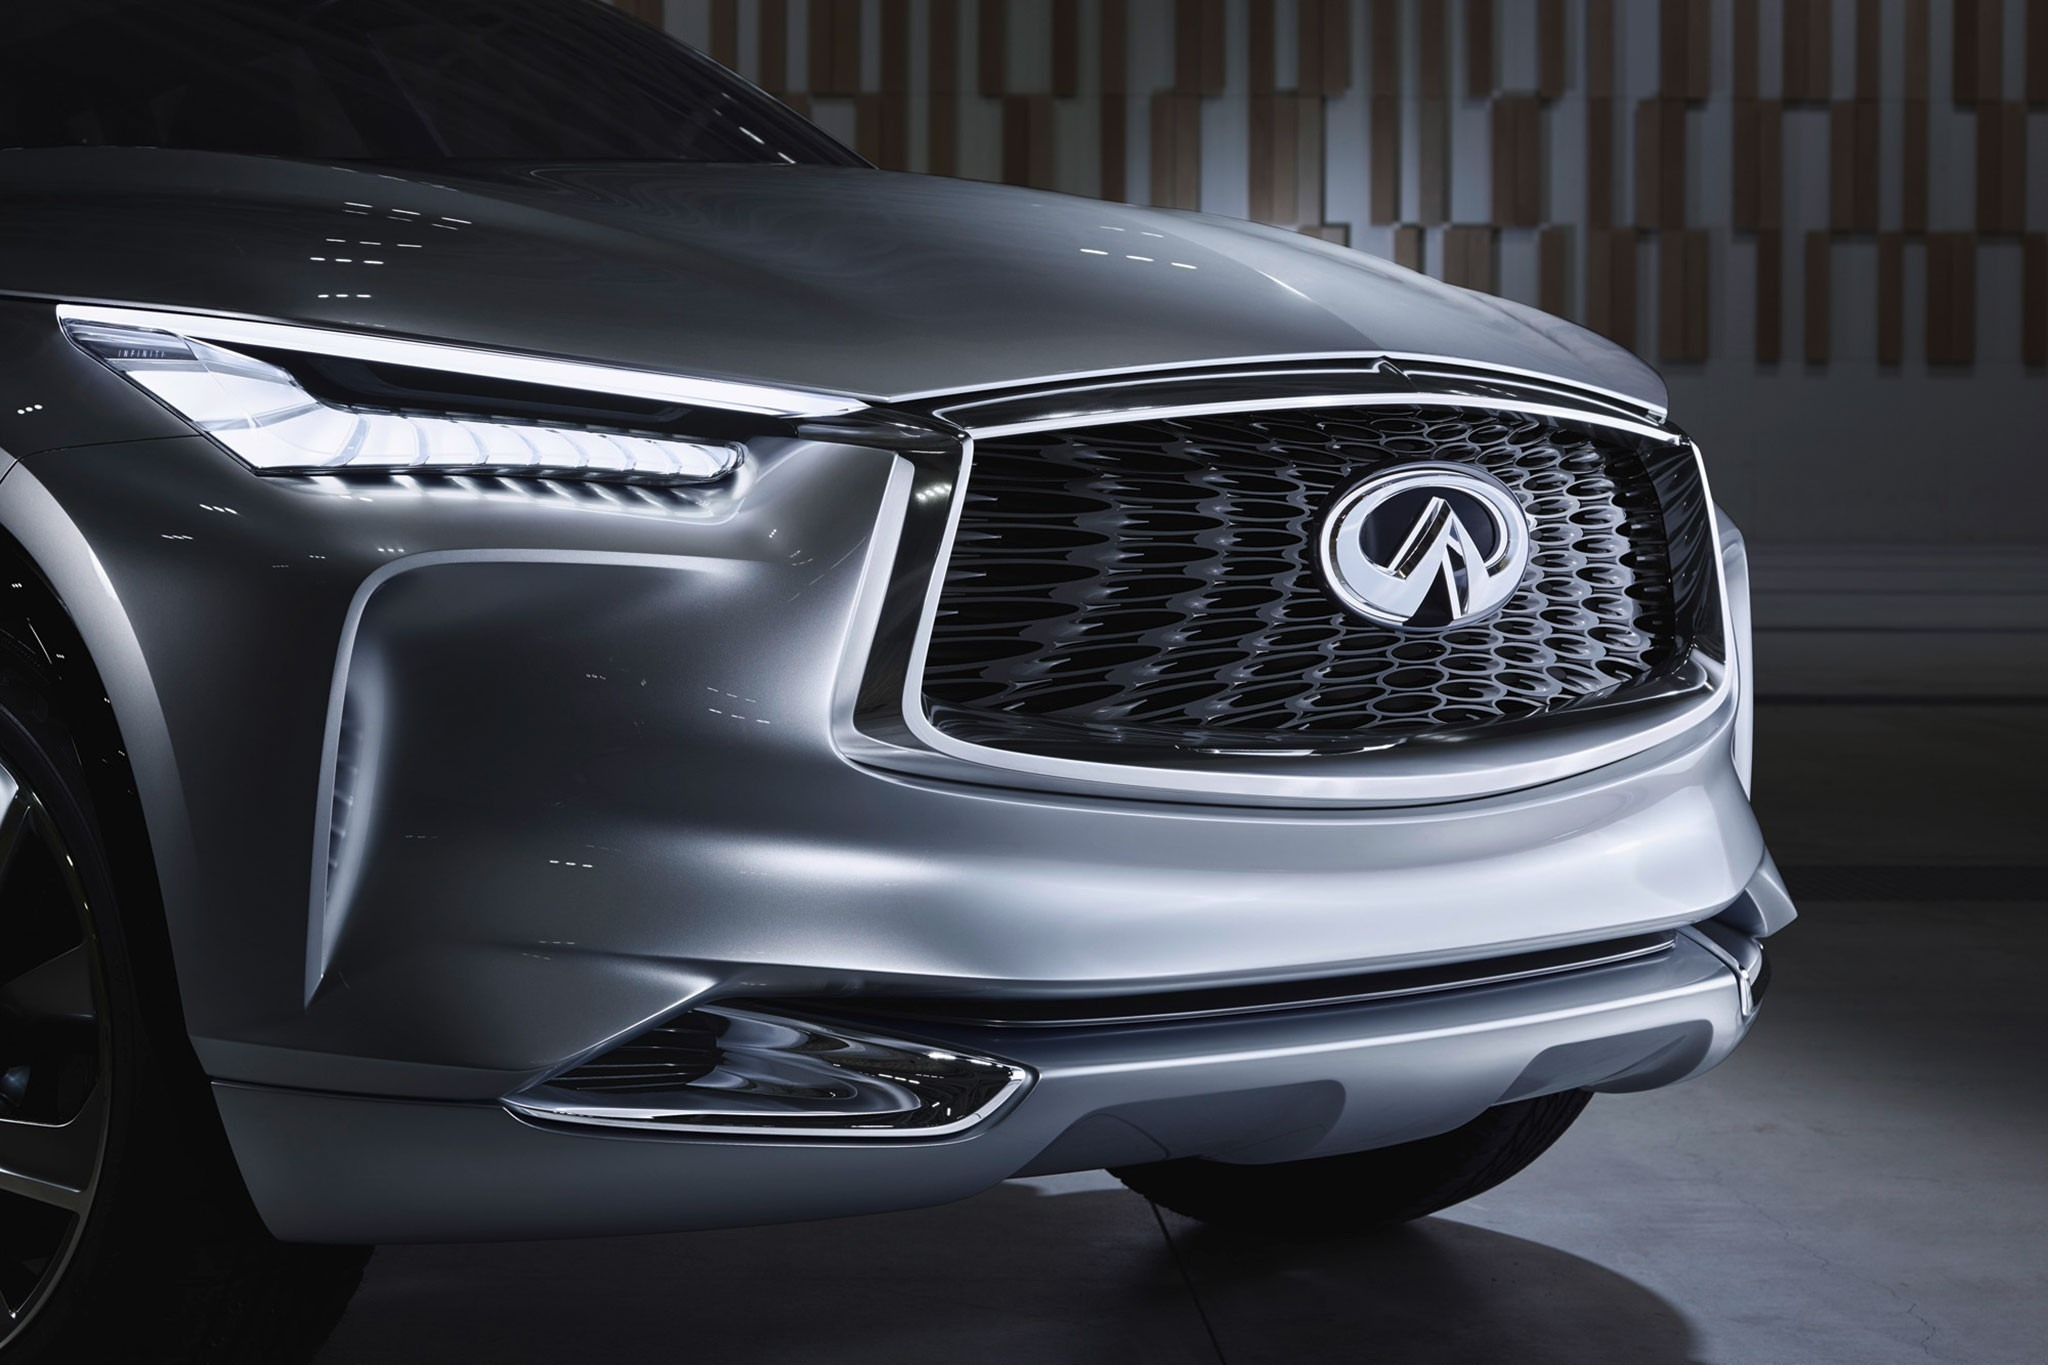 13 The 2020 Infiniti QX60 Hybrid Price Design and Review